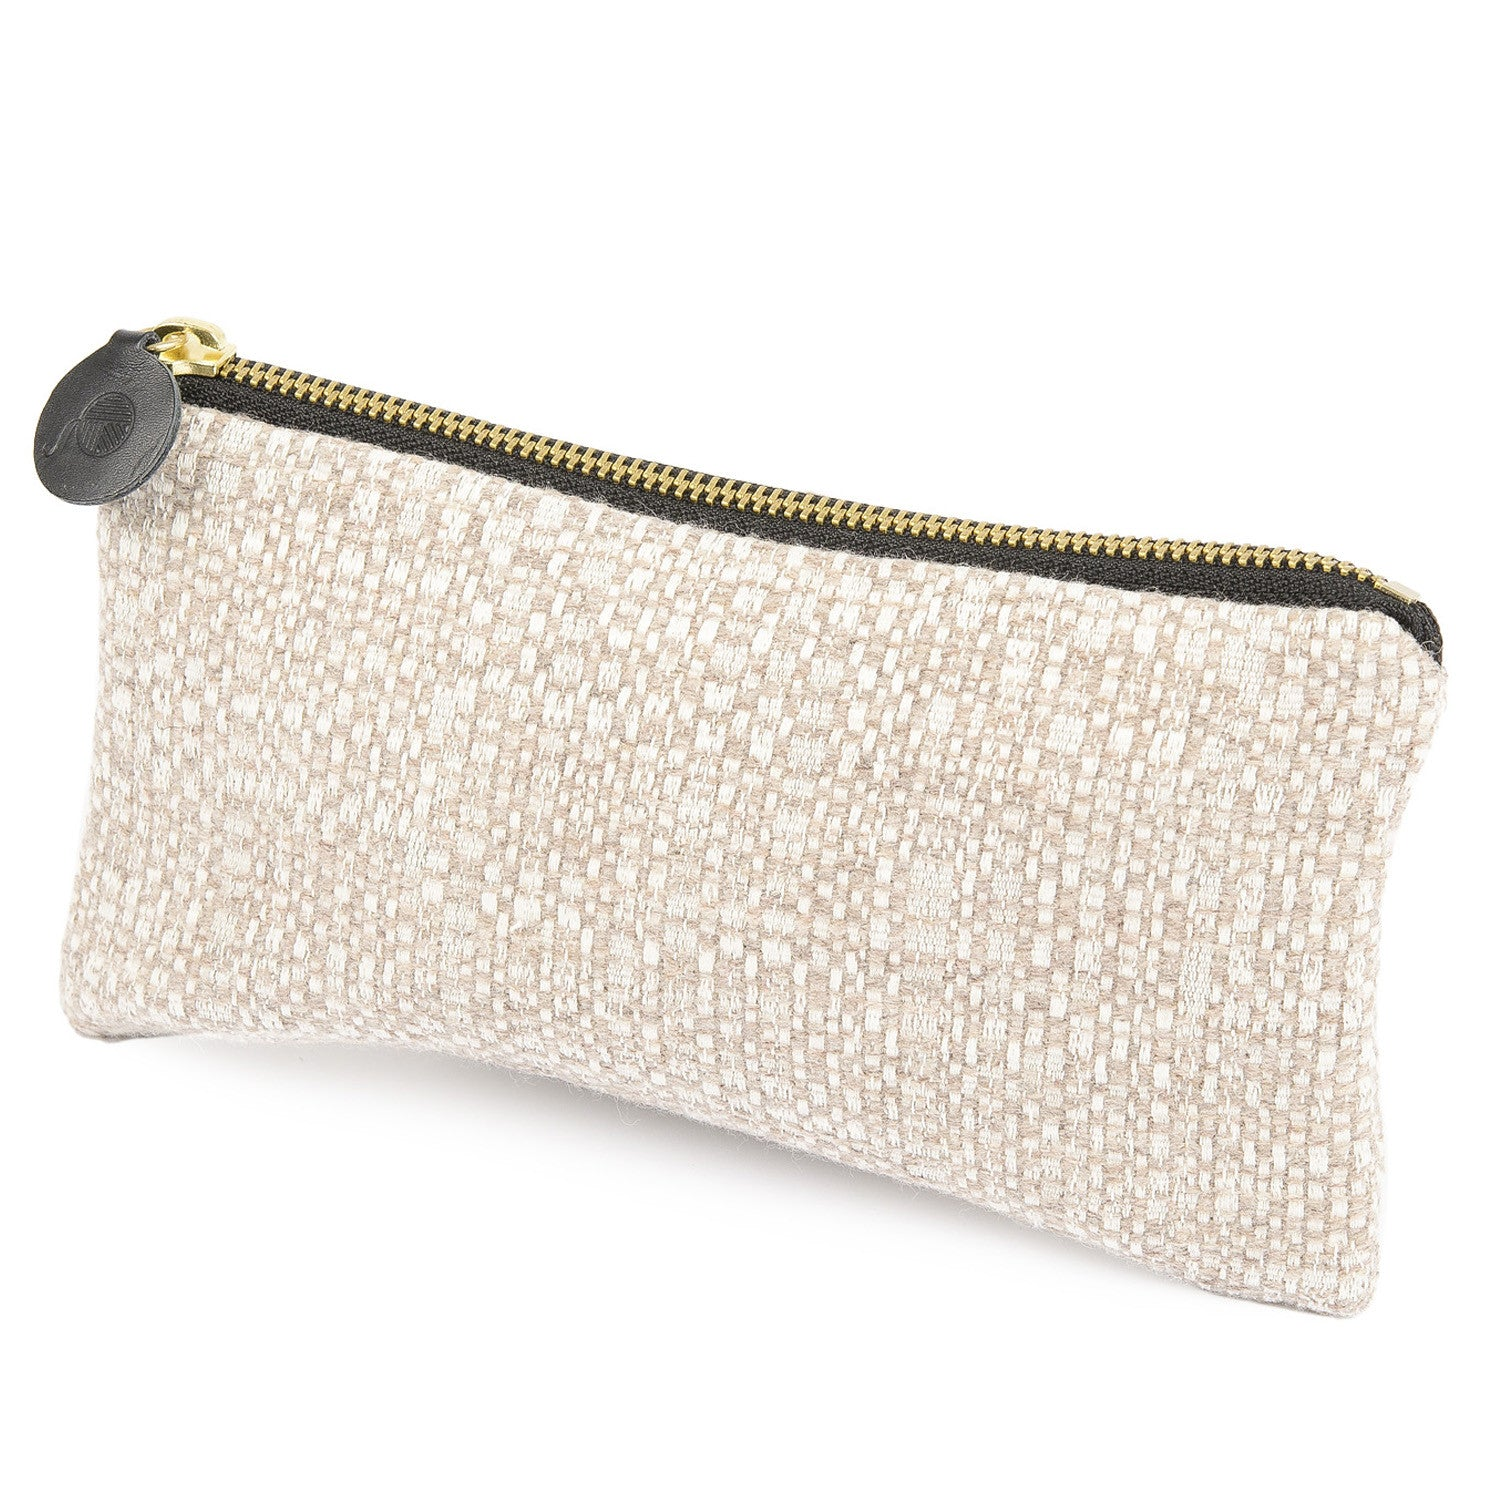 Merino Lambswool Zip Purse - Cove Mushroom - Tori Murphy Ltd